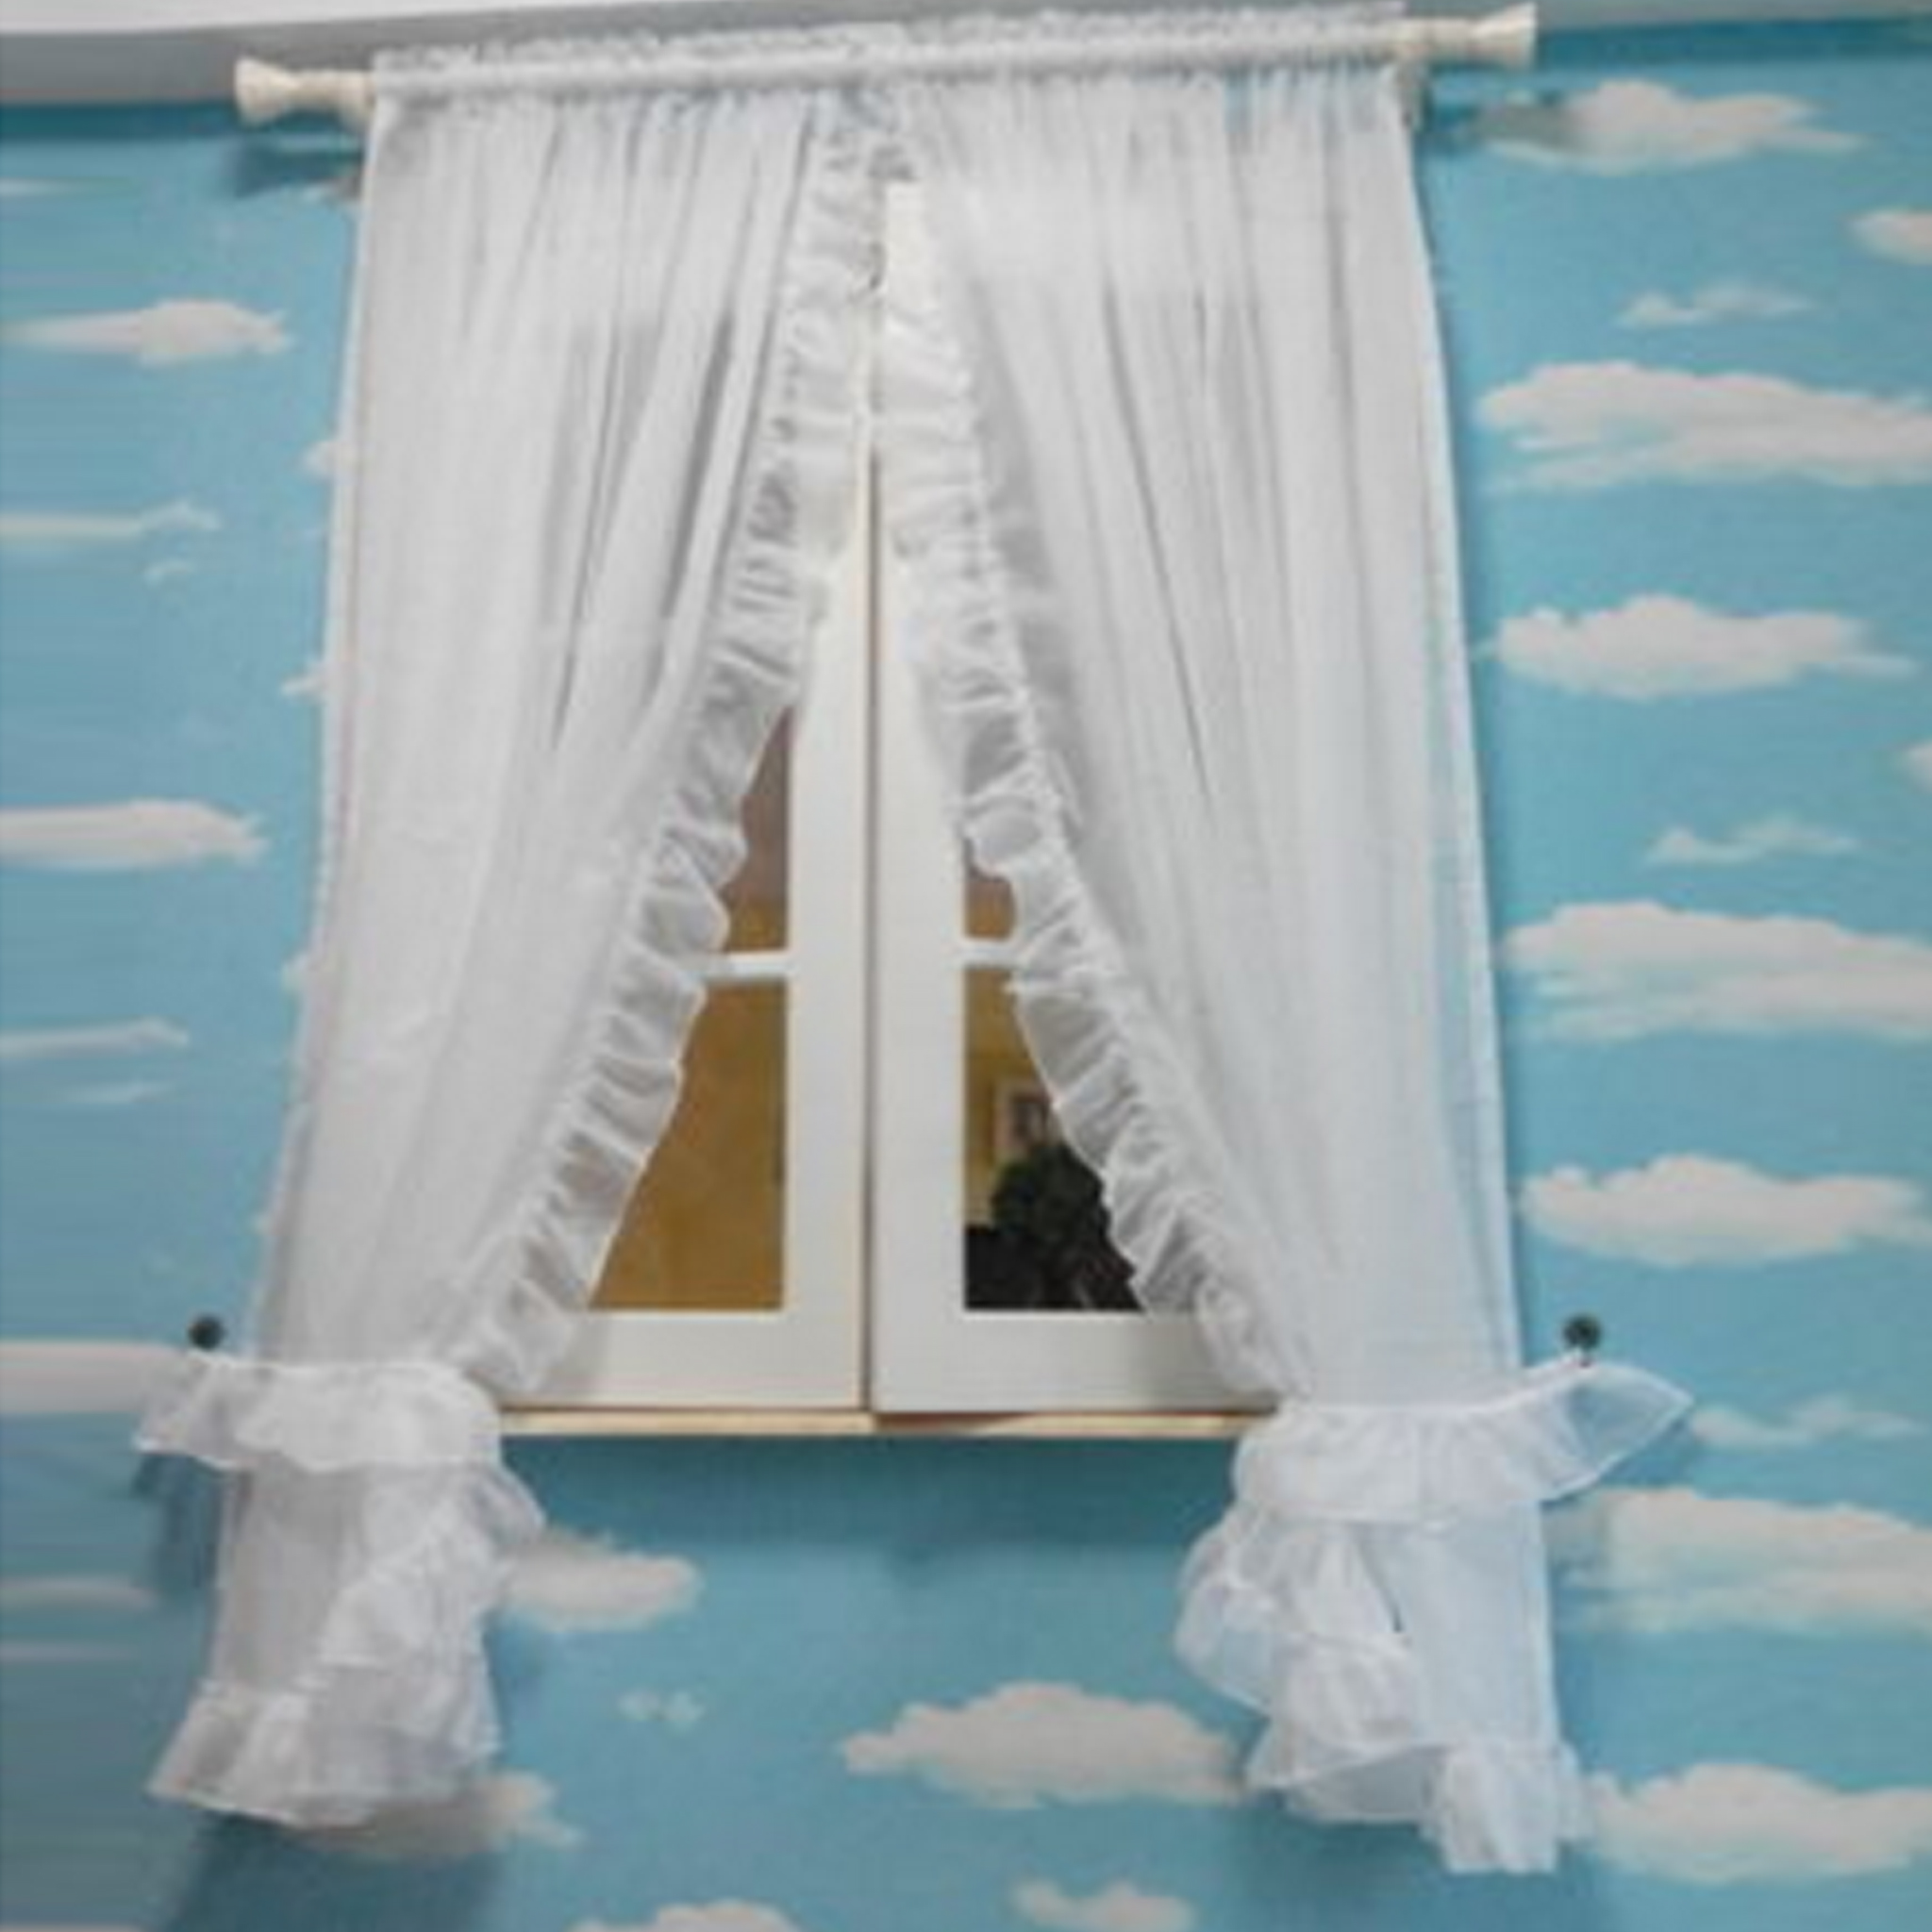 tindow interior kitchen home treatment and target your panel ideas ruffled for panels with decorating sheer sizes voile gypsy curtain decor curtains